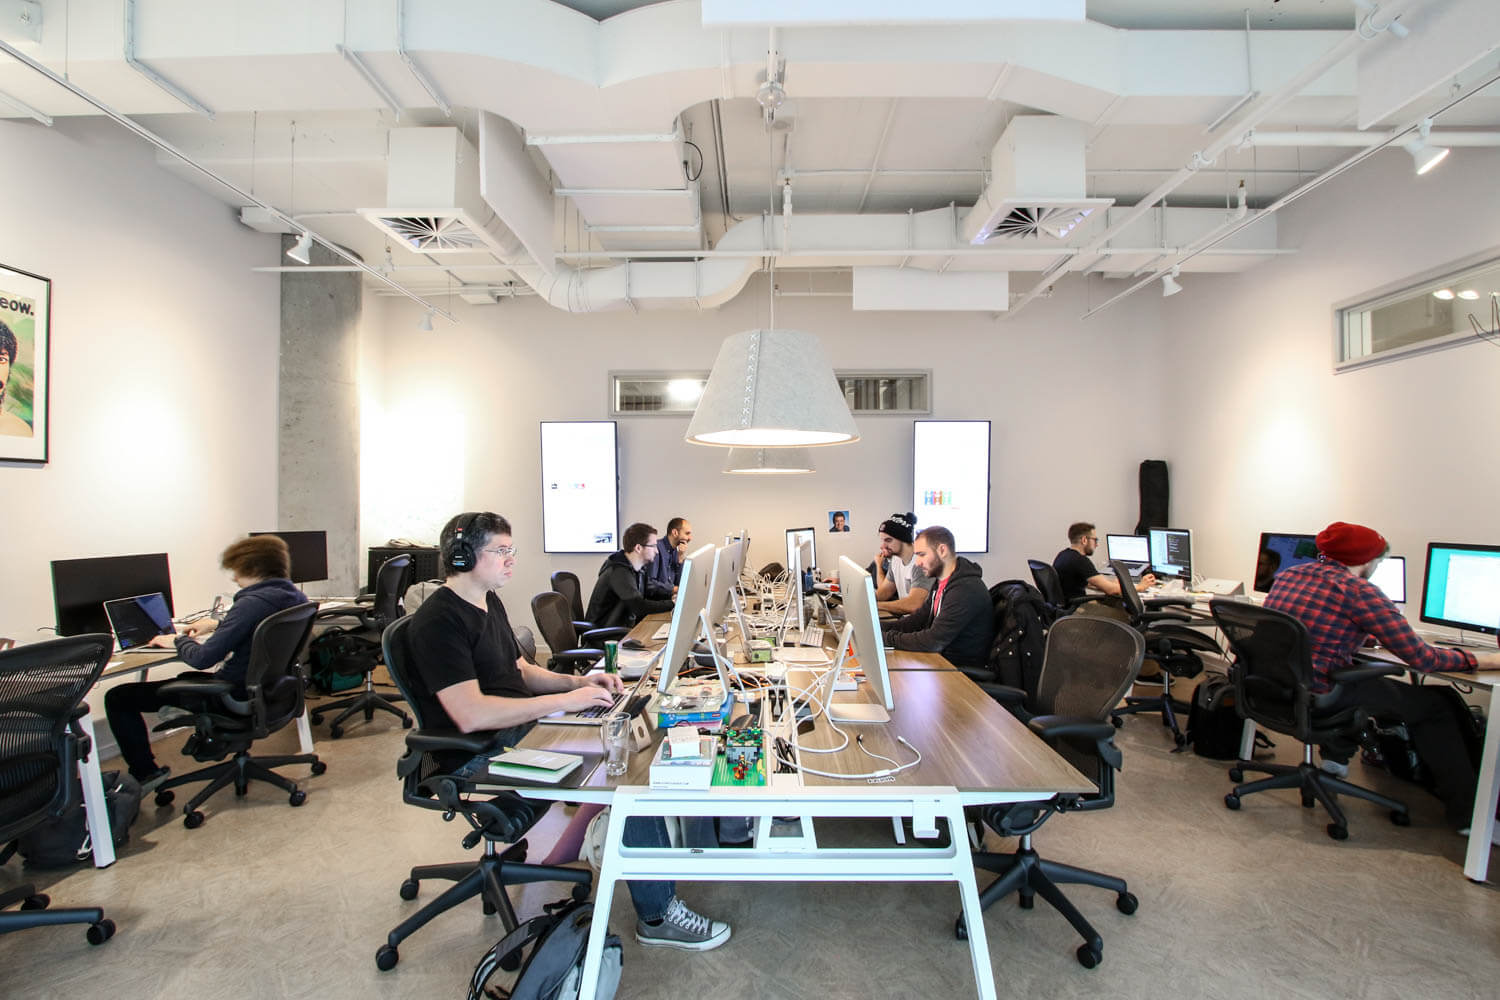 Shopify Montreal Office-11